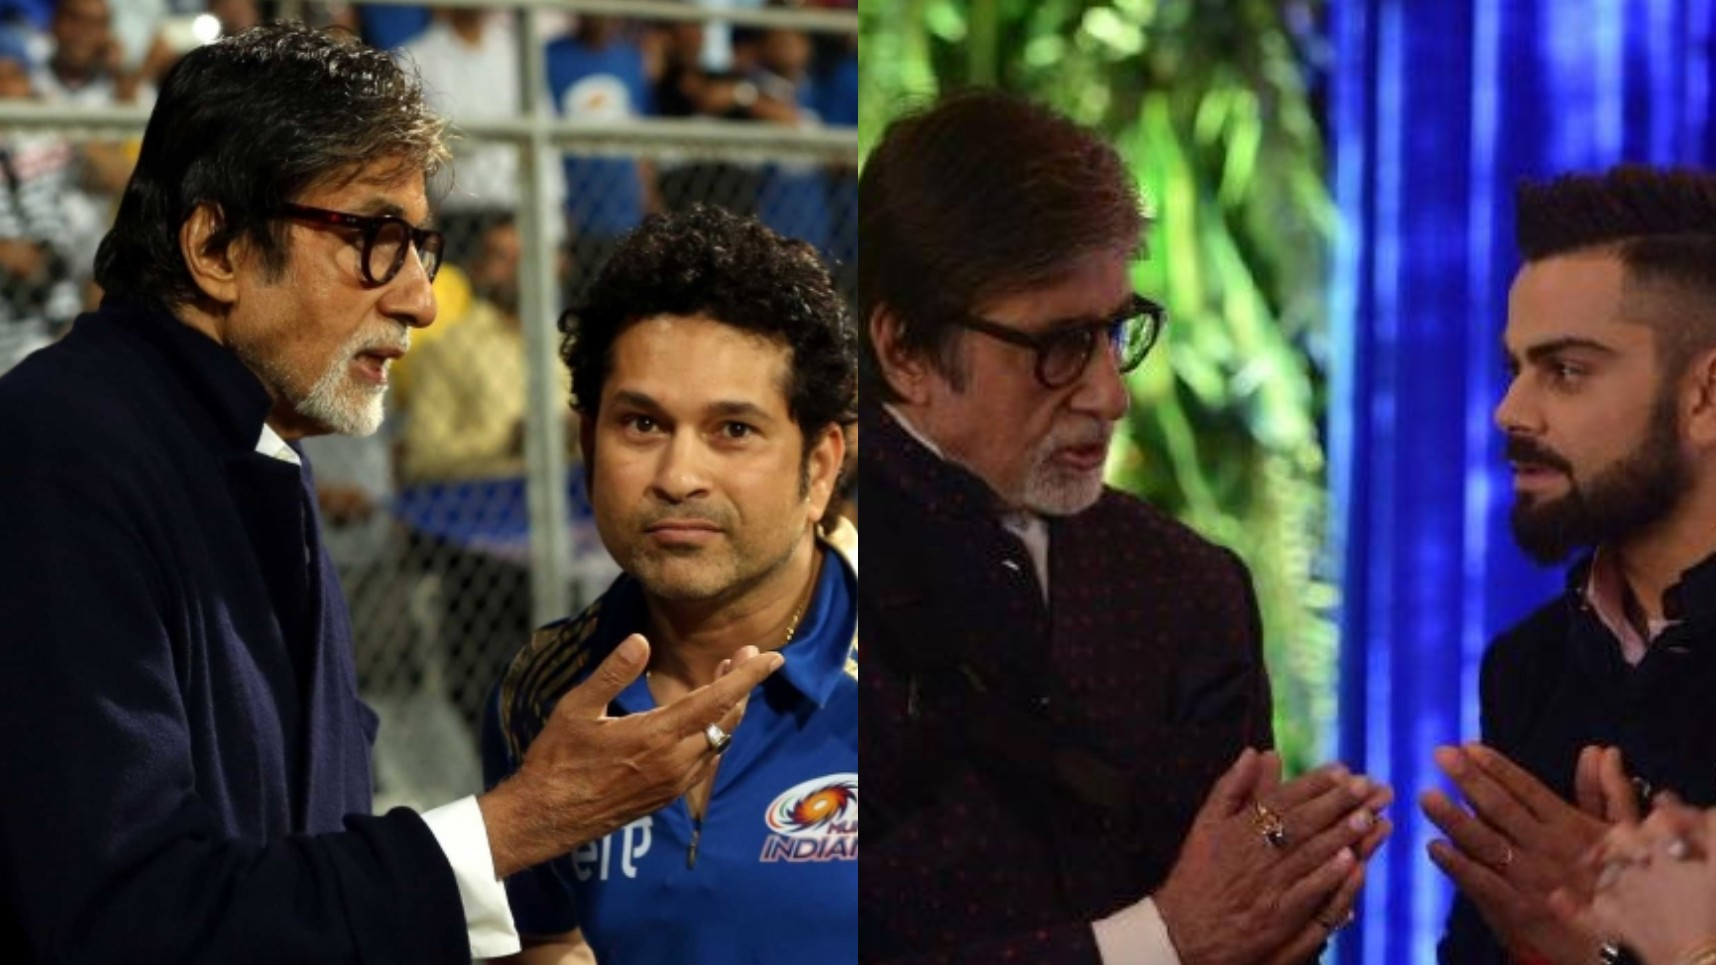 Indian cricket fraternity wishes megastar Amitabh Bachchan as he celebrates his 78th birthday